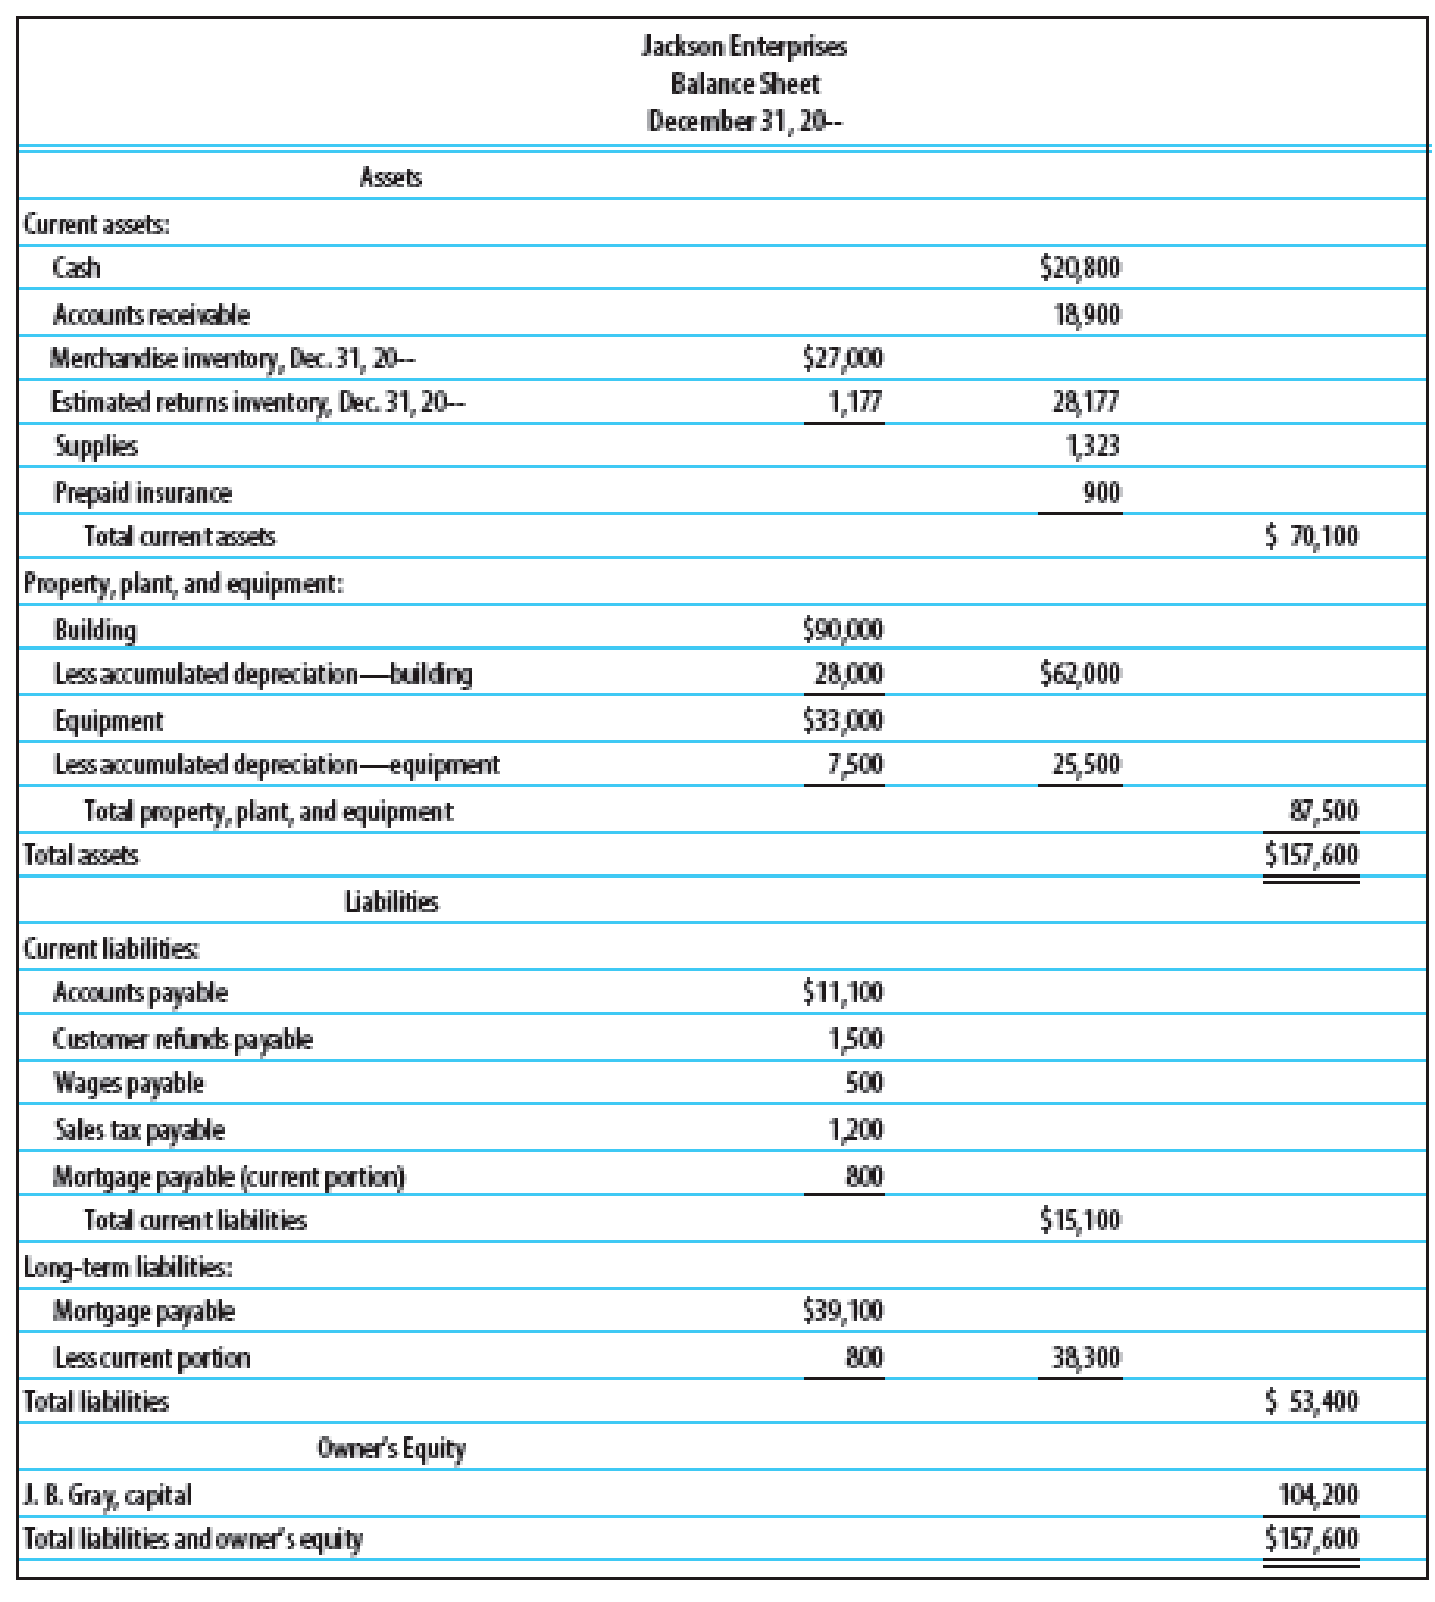 Financial Ratios Based On The Financial Statements For